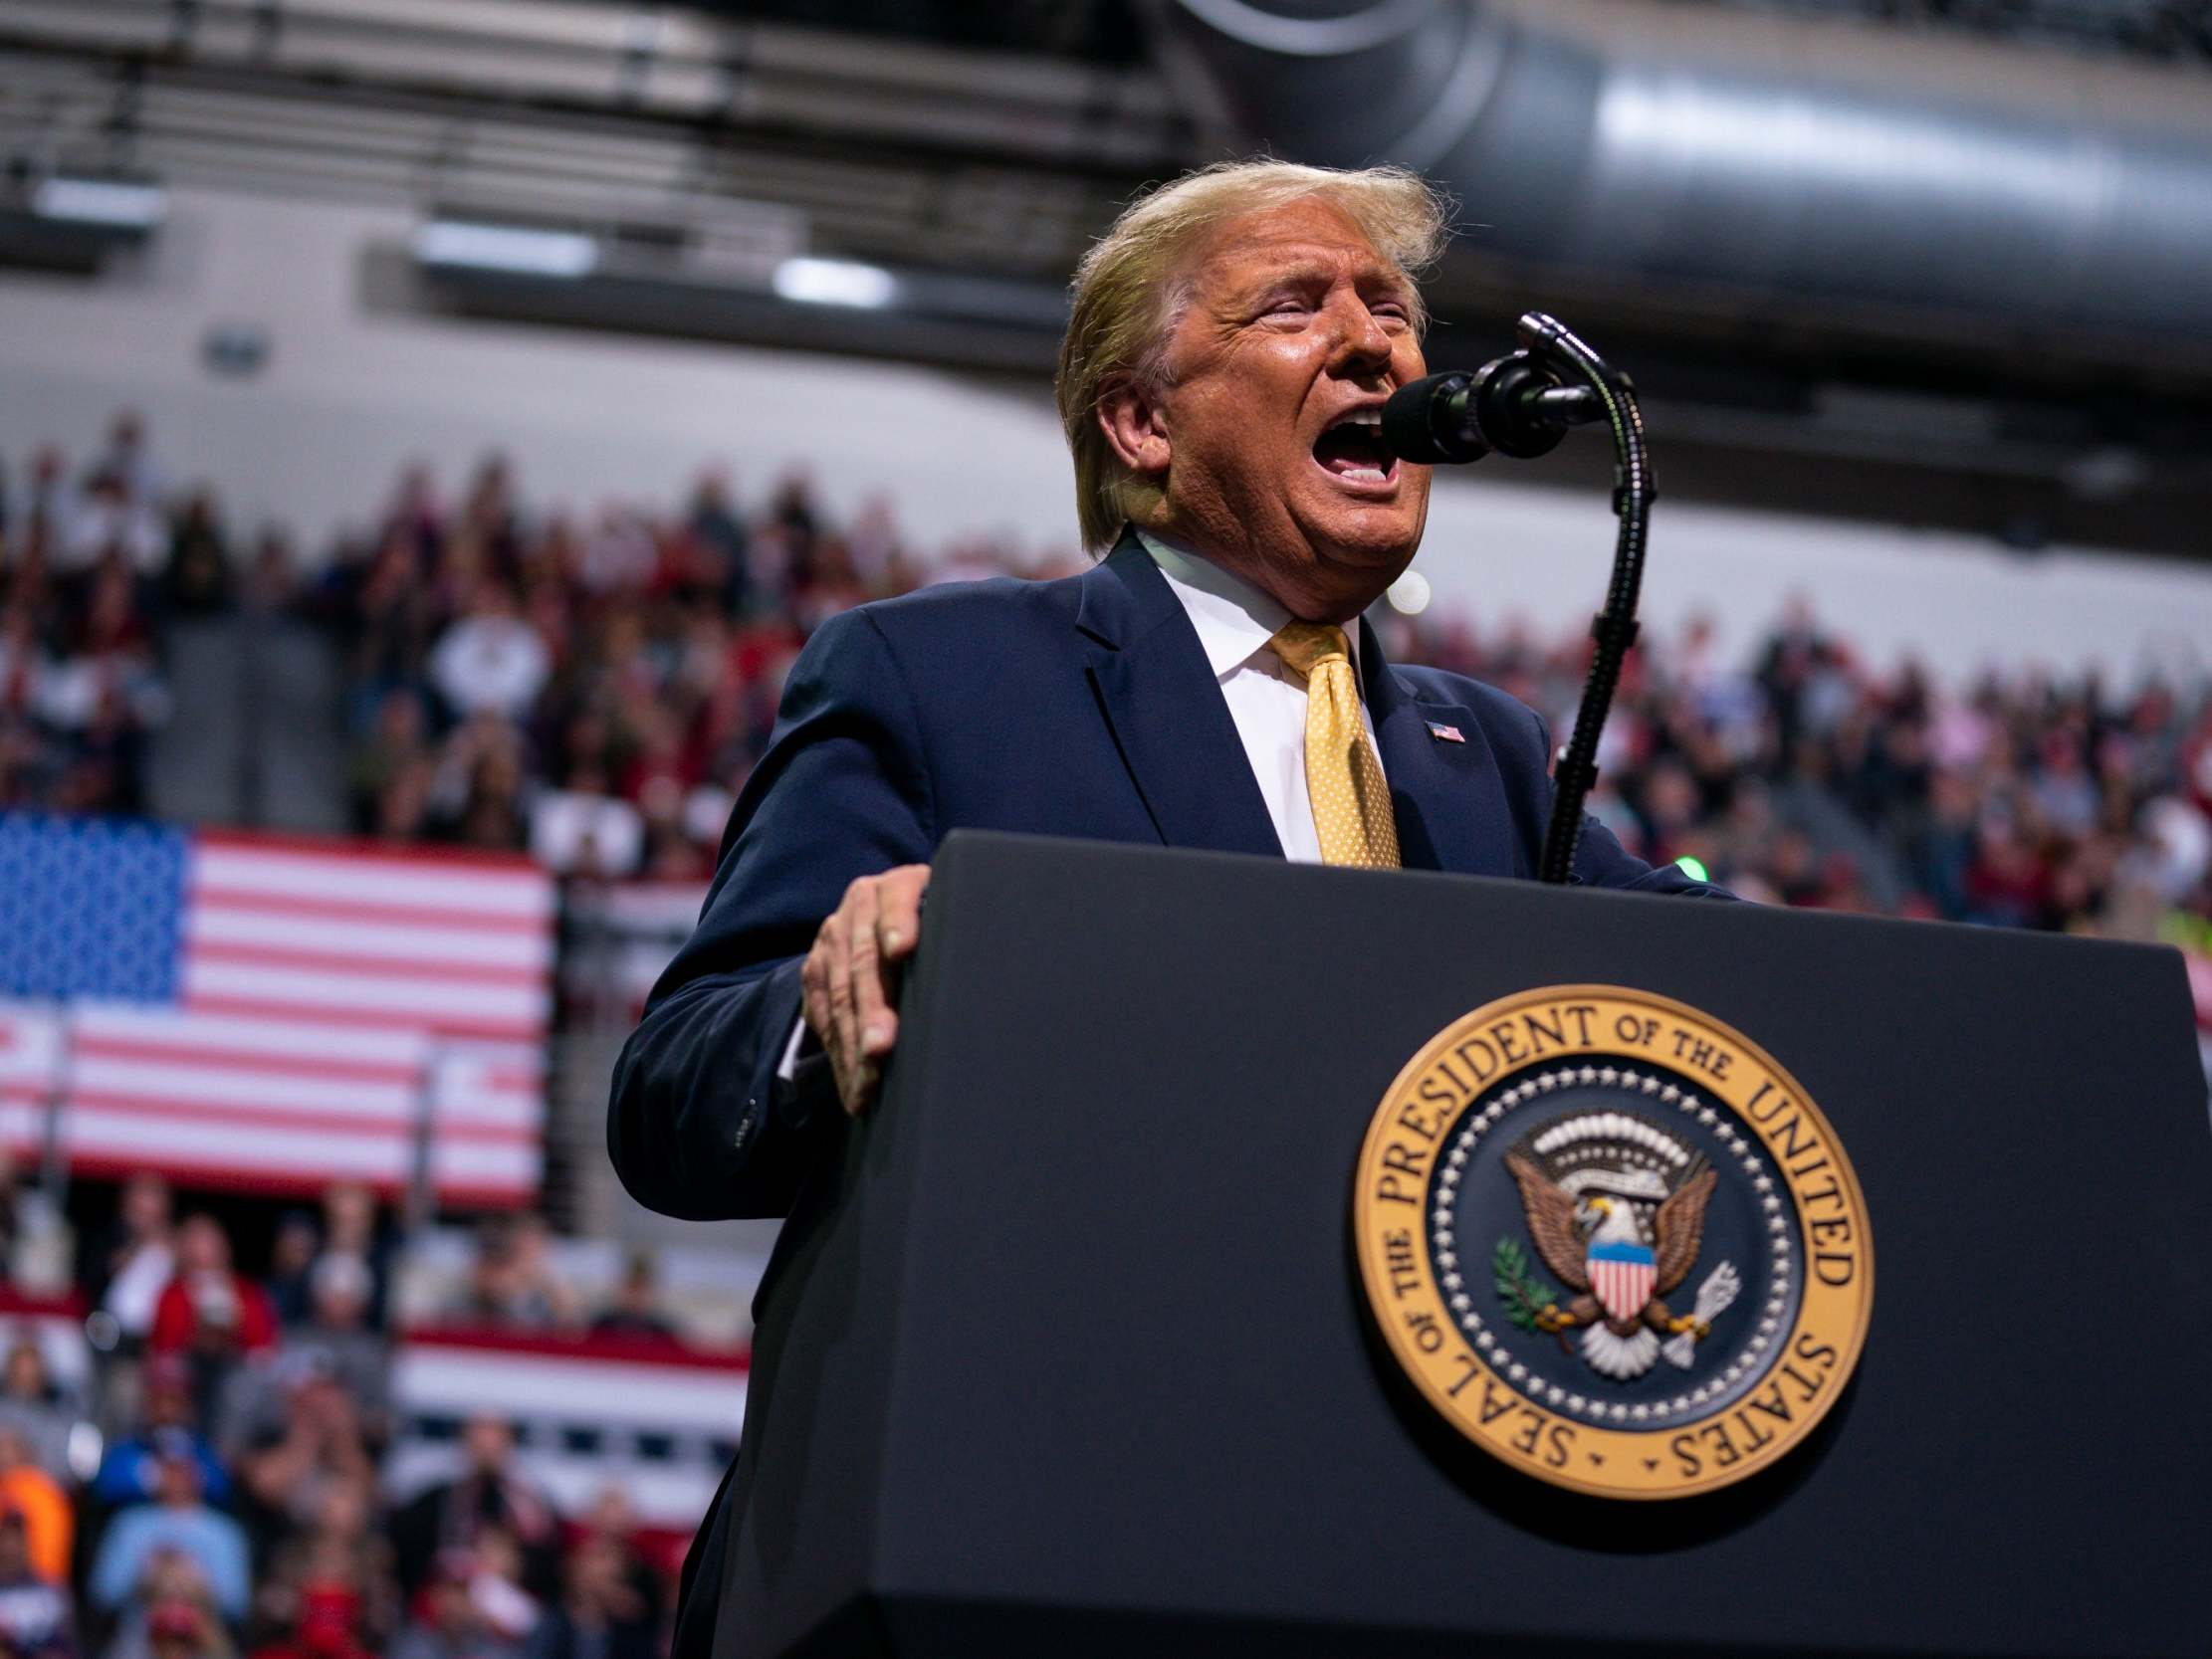 Trump rally boos Greta Thunberg as he complains he should win Time Person of the Year 'every single year'